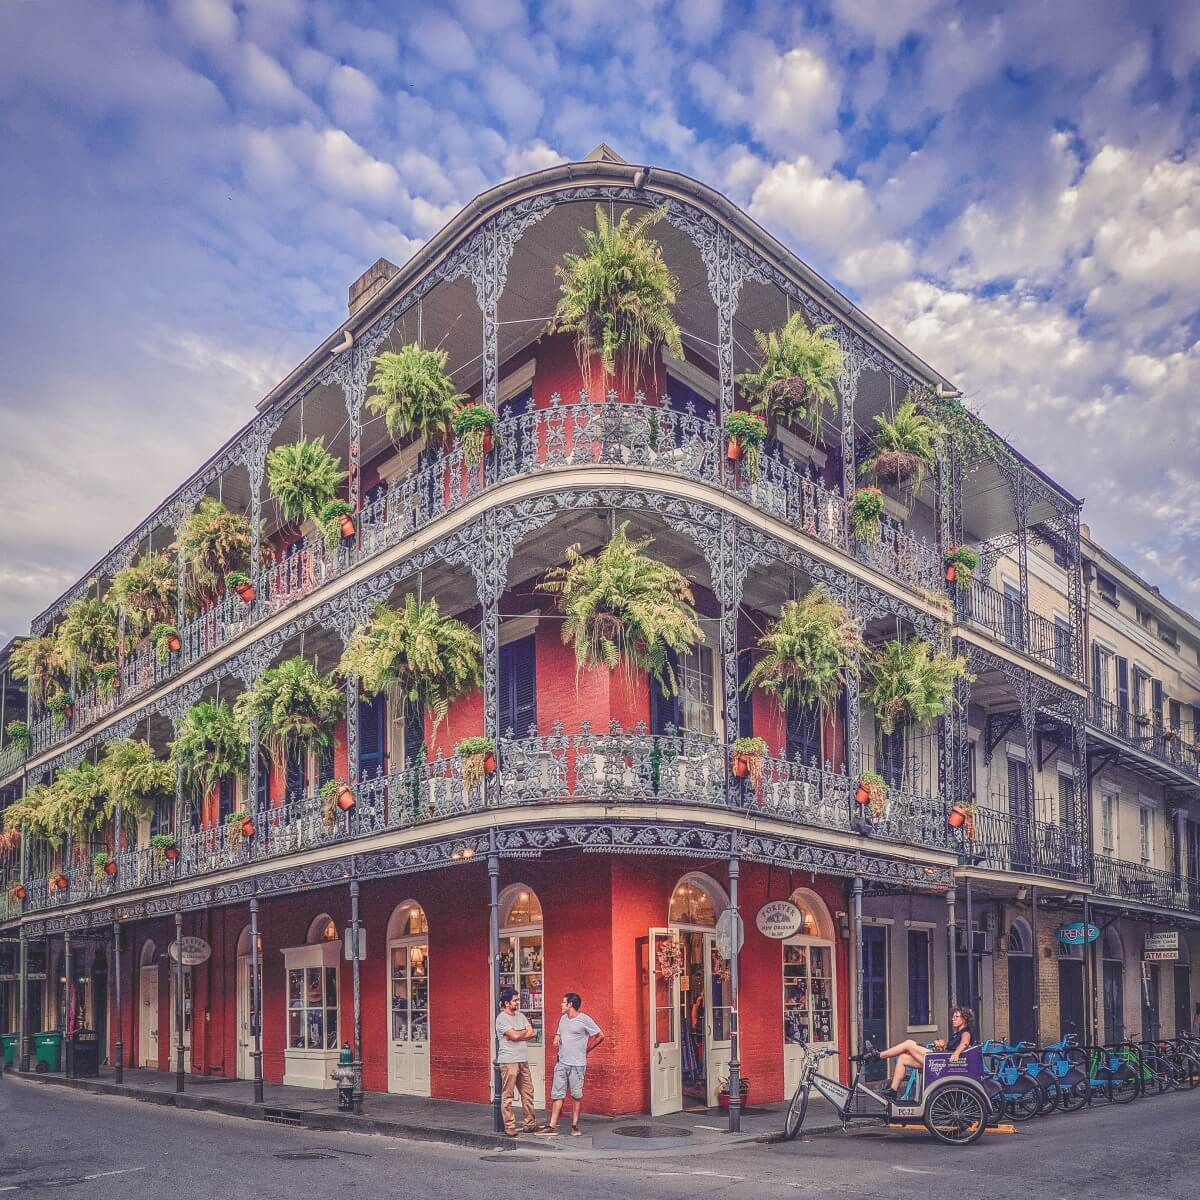 French Quarter in Lousiana, once of the most iconic states to visit